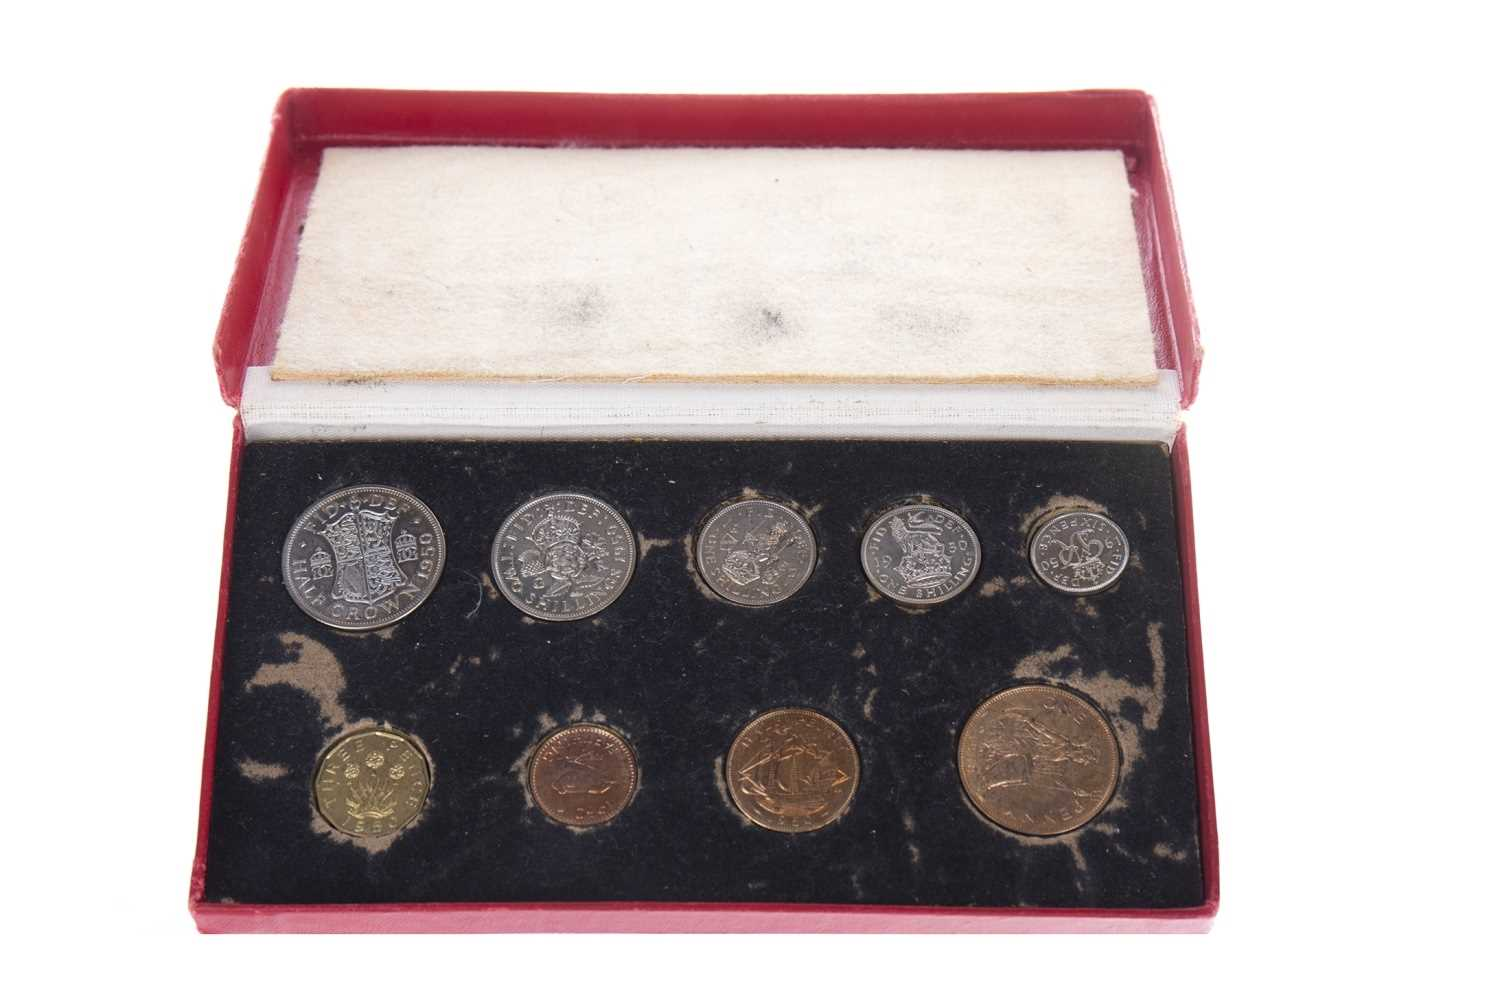 Lot 25-A THE ROYAL MINT 1950 ANNUAL COINAGE SET